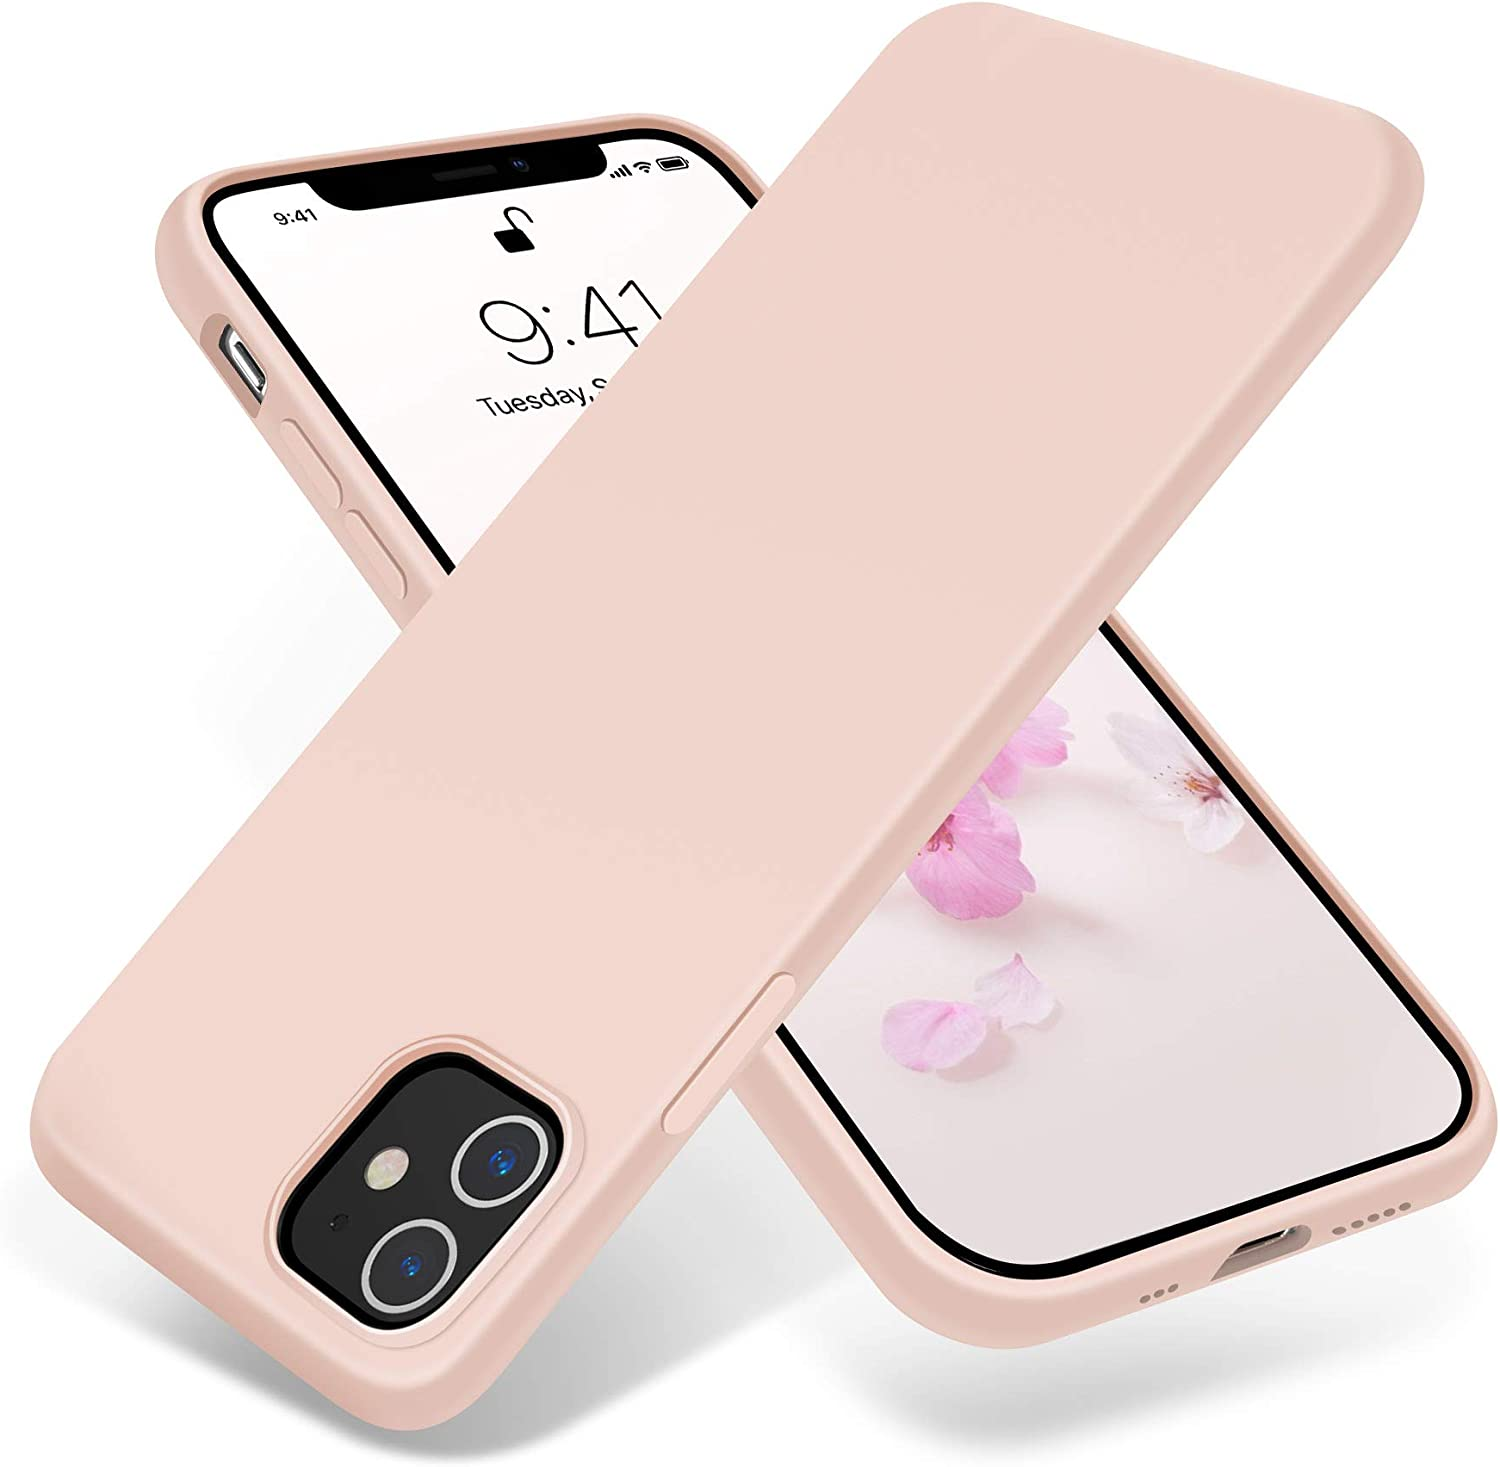 JELE Compatible with iPhone 12 Case and iPhone 12 Pro Case 6.1 inch(2020),Premium Soft Liquid Silicone Rubber Full-Body Protective Anti-Scratch Shockproof Bumper Case(Pink)